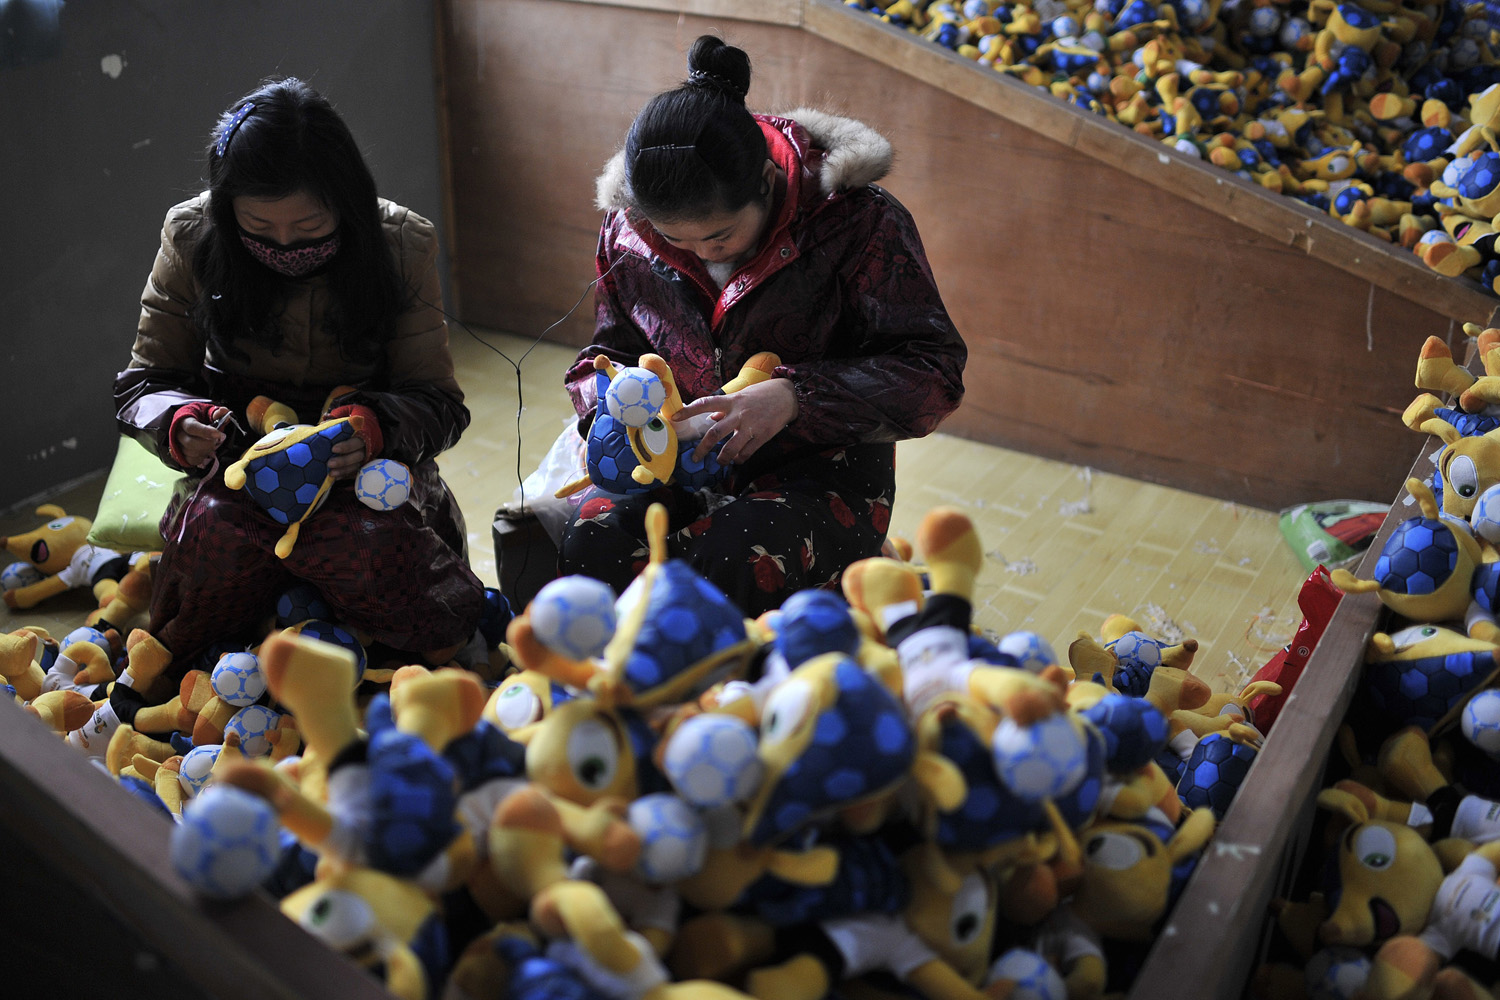 Jan. 6, 2014. Staff work in a factory making toys of the mascot for the 2014 Brazil World Cup  Fuleco  in Tianchang, China.